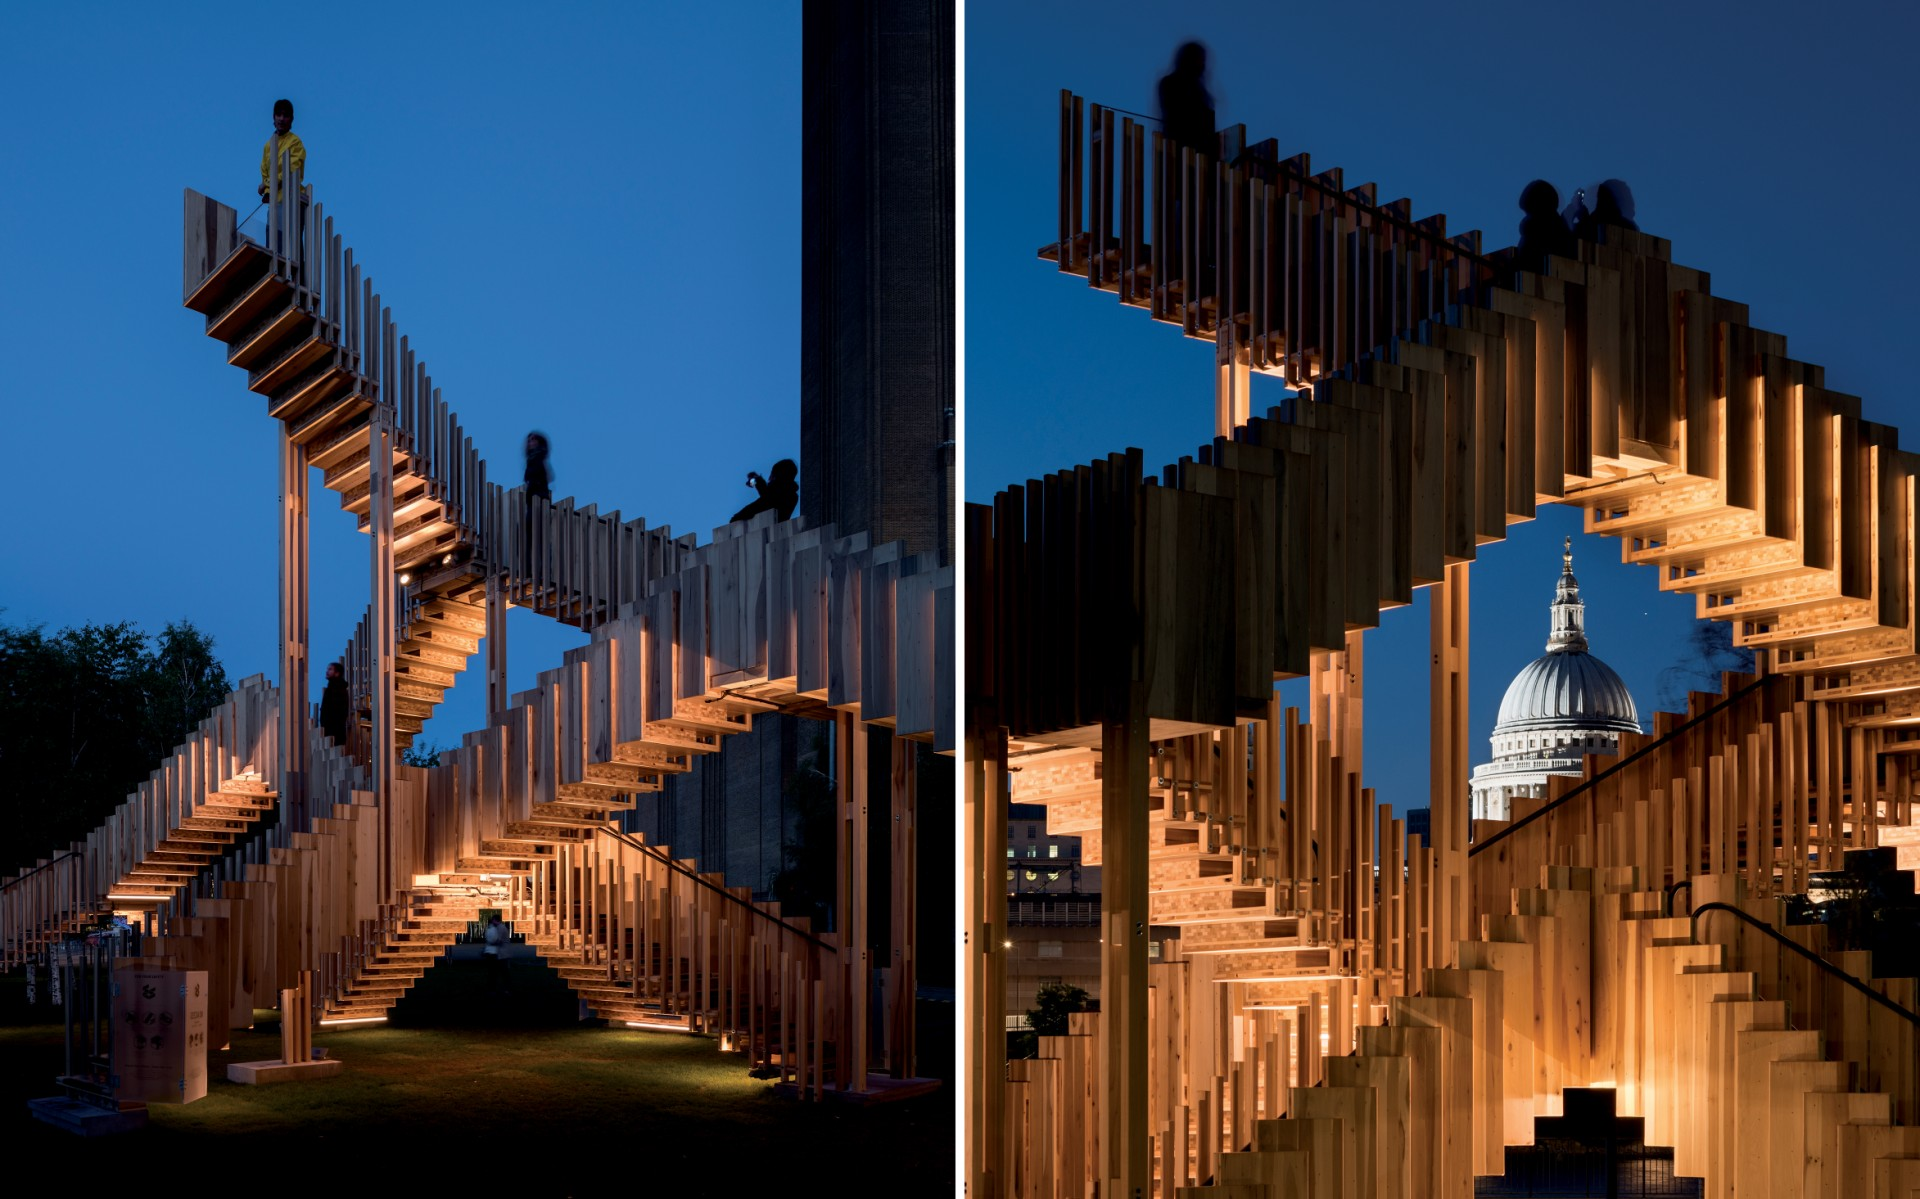 The sequencing visually recomposes and reconfigures the sculpture, matching its Escheresque design spirit.